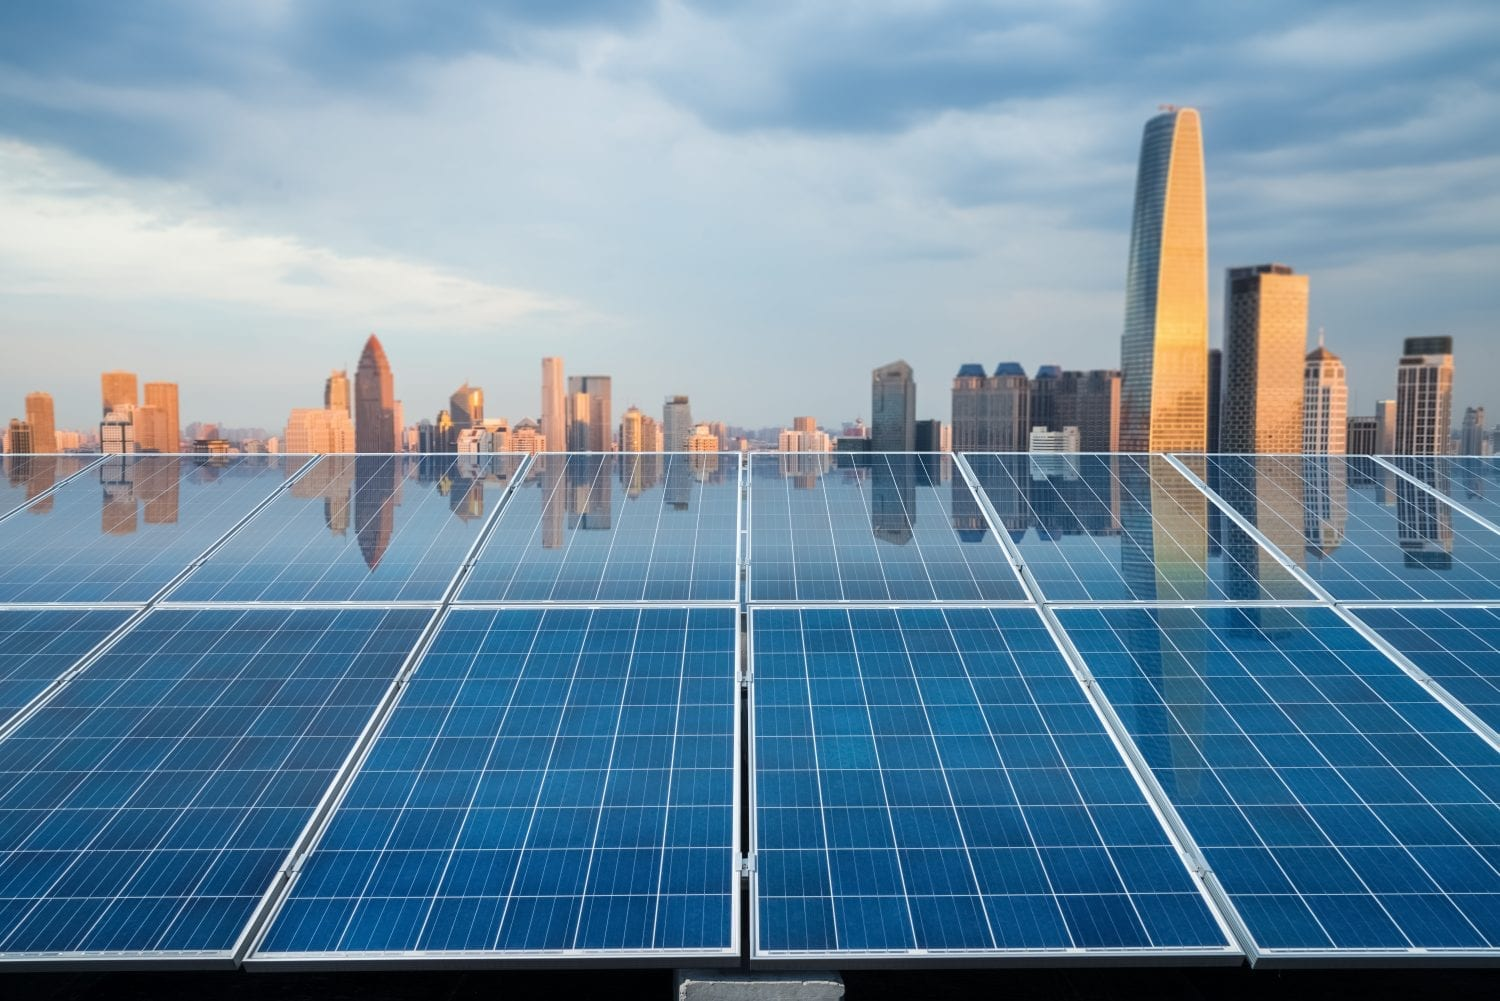 Rooftop solar panels city reflection